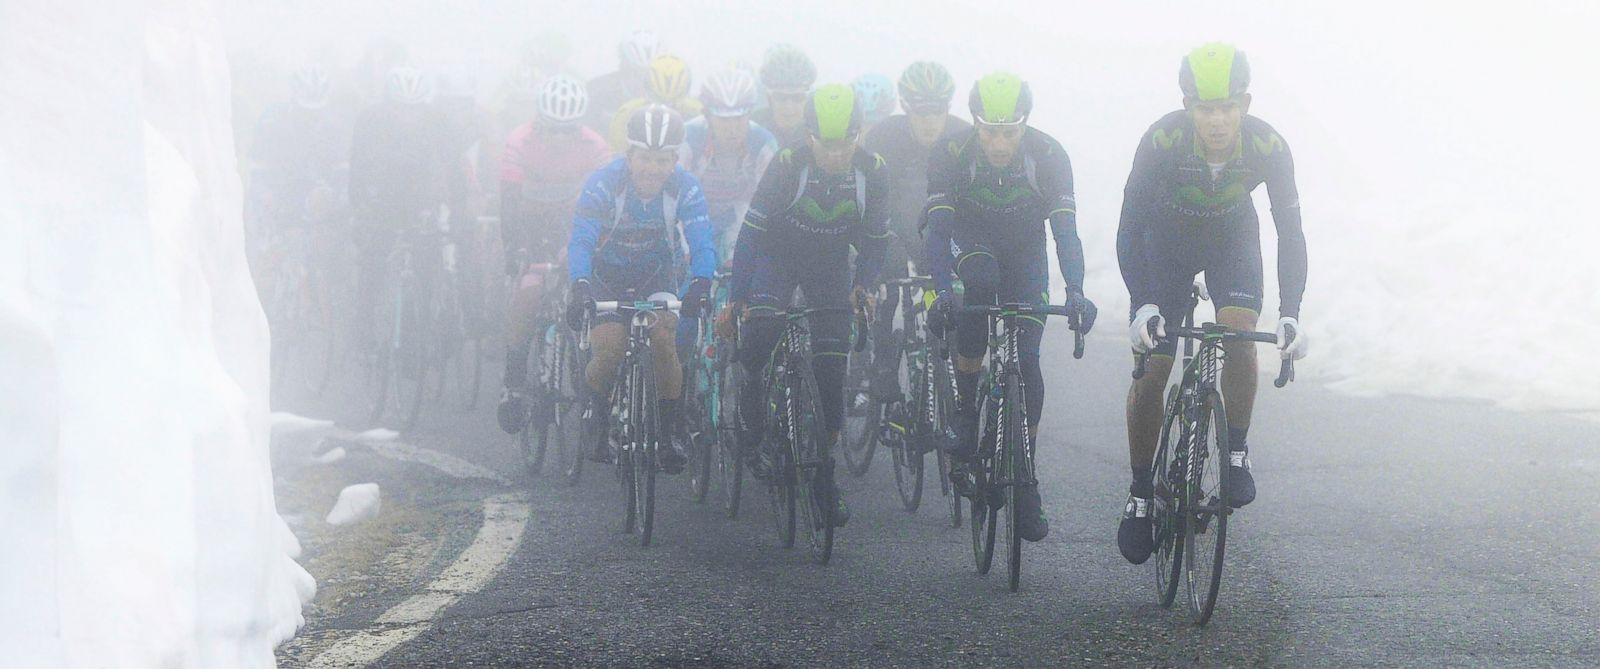 PHOTO: Movistar team cyclists lead the pack as they climb among fog and snow during the 16th stage of the Giro dItalia cycling race from Ponte di Legno to Val Martello, Italy, May 27, 2014.